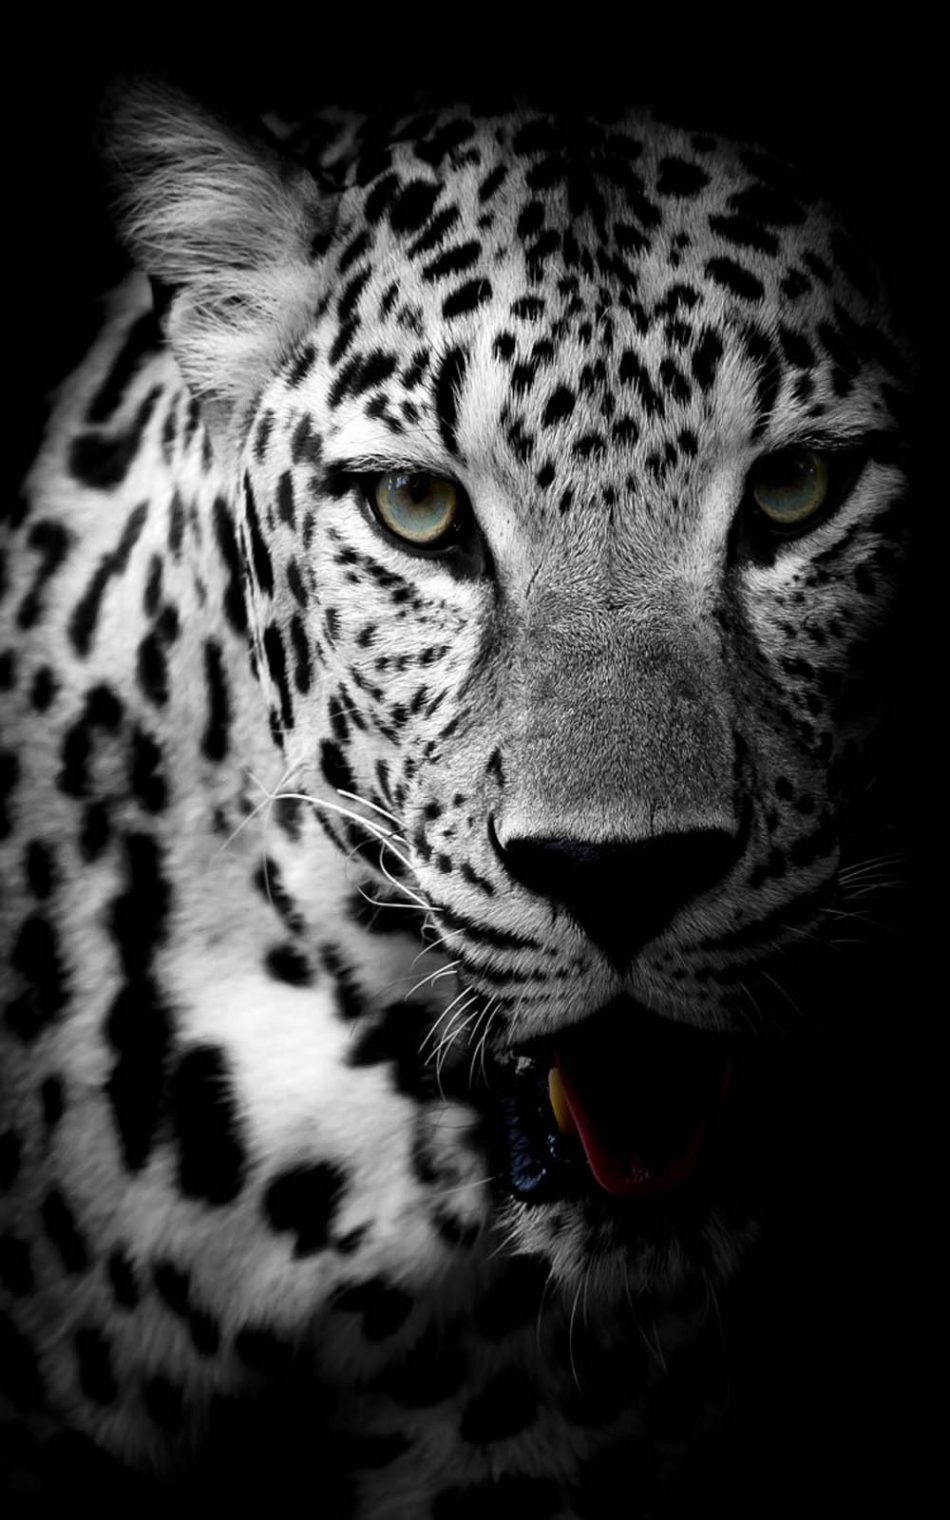 Leopard Black White 4k Ultra Hd Mobile Wallpaper Leopard Wallpaper Wild Animal Wallpaper Snow Leopard Wallpaper